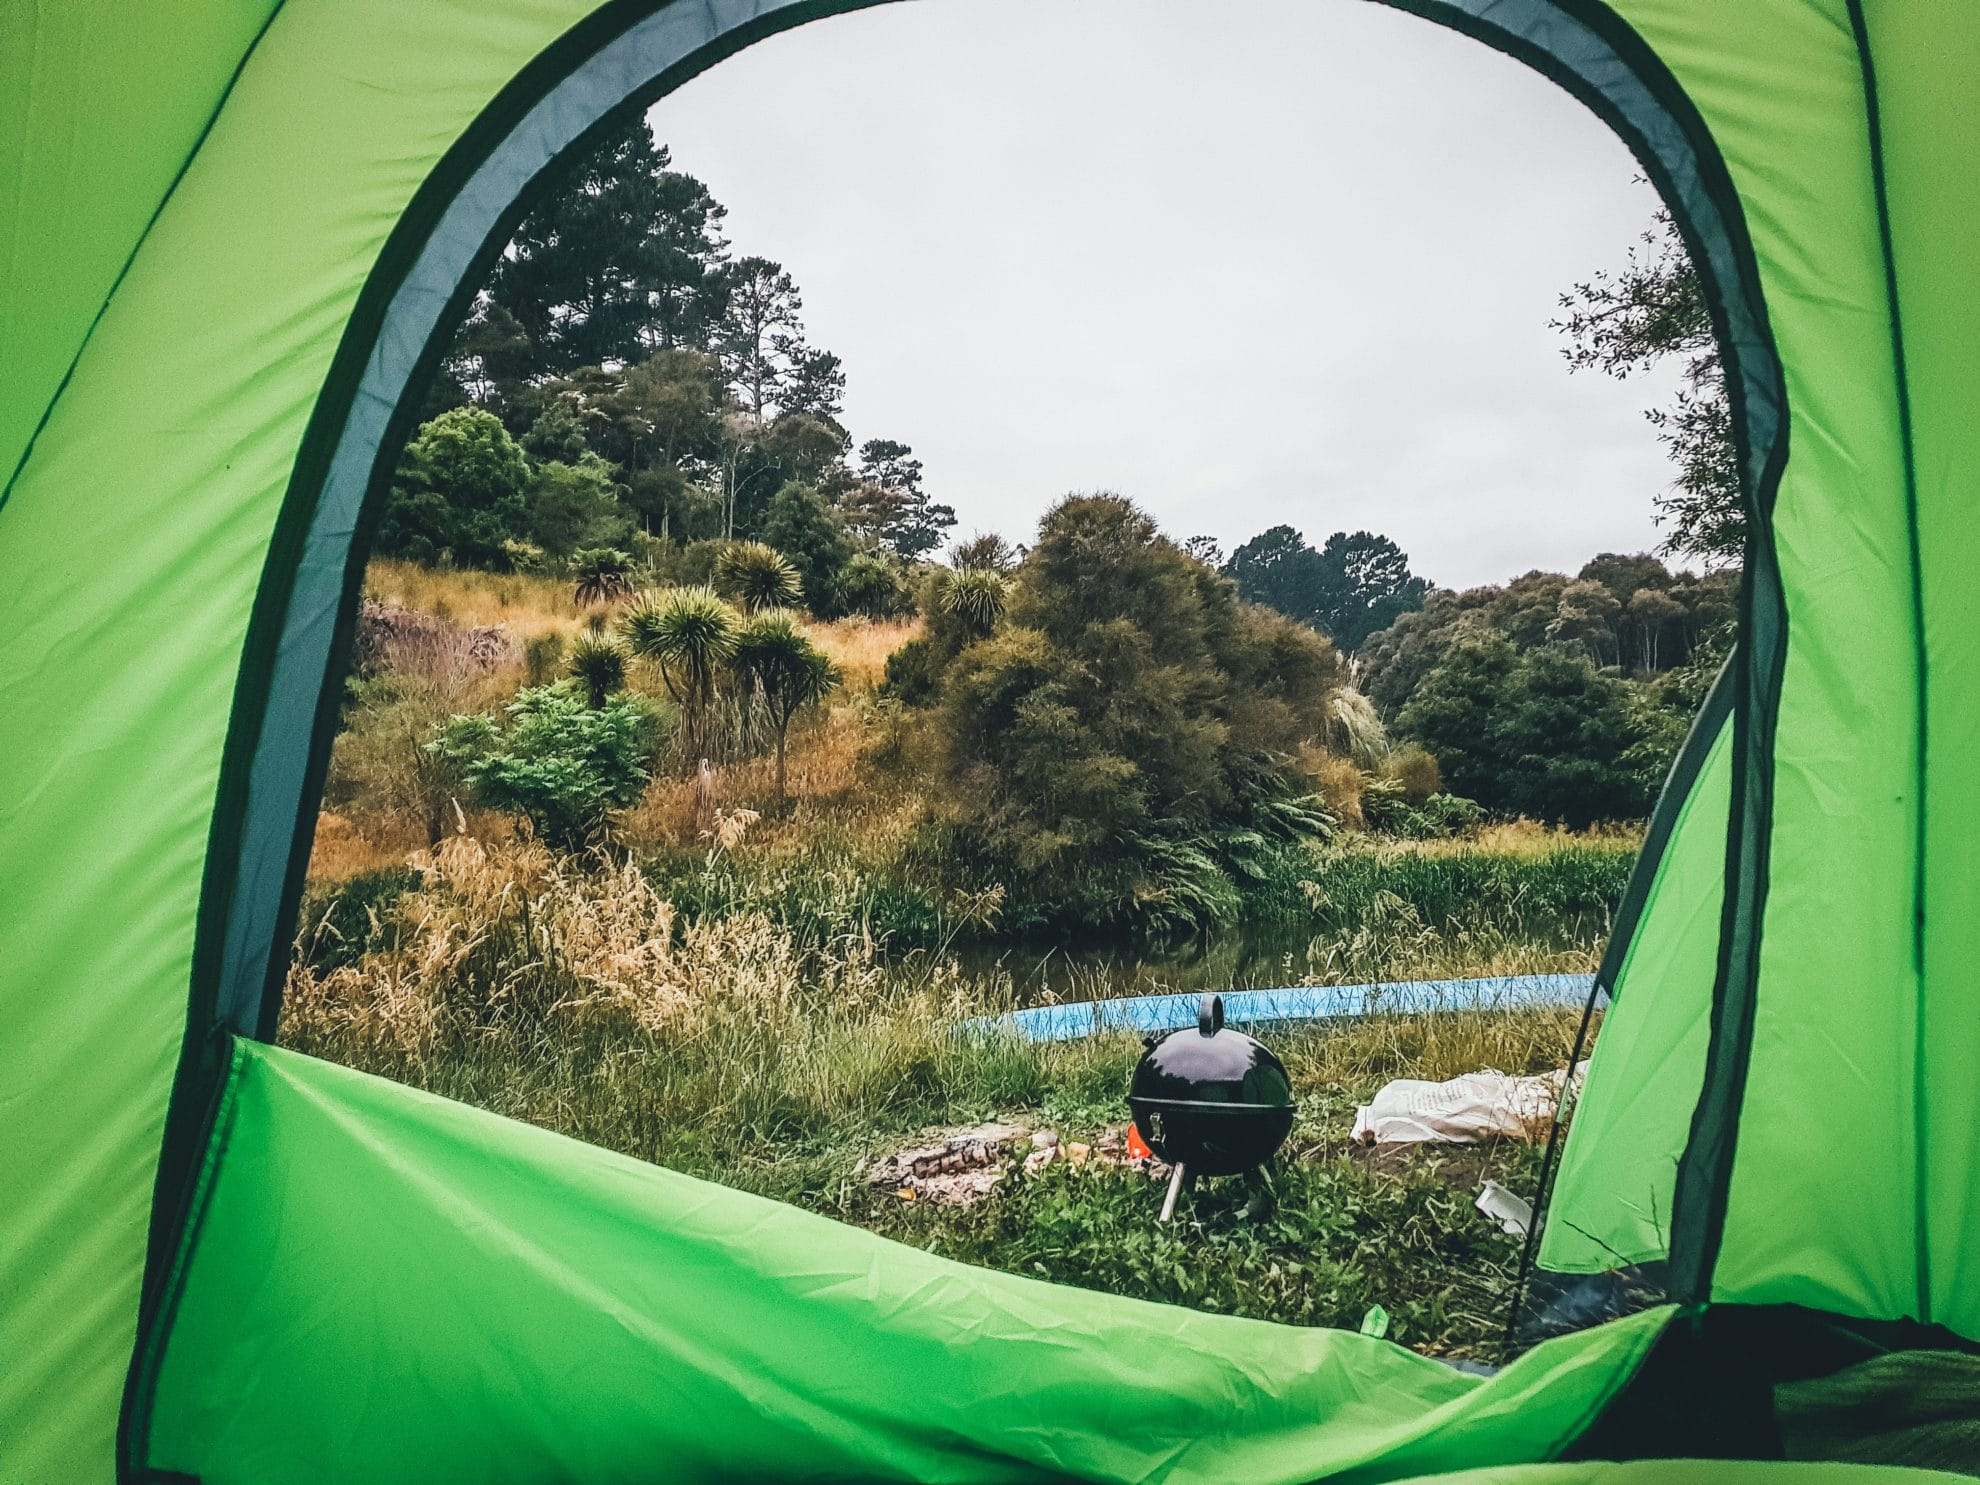 The Best 3 Room Camping Tents in 2021 Reviewed   Outdoor ...